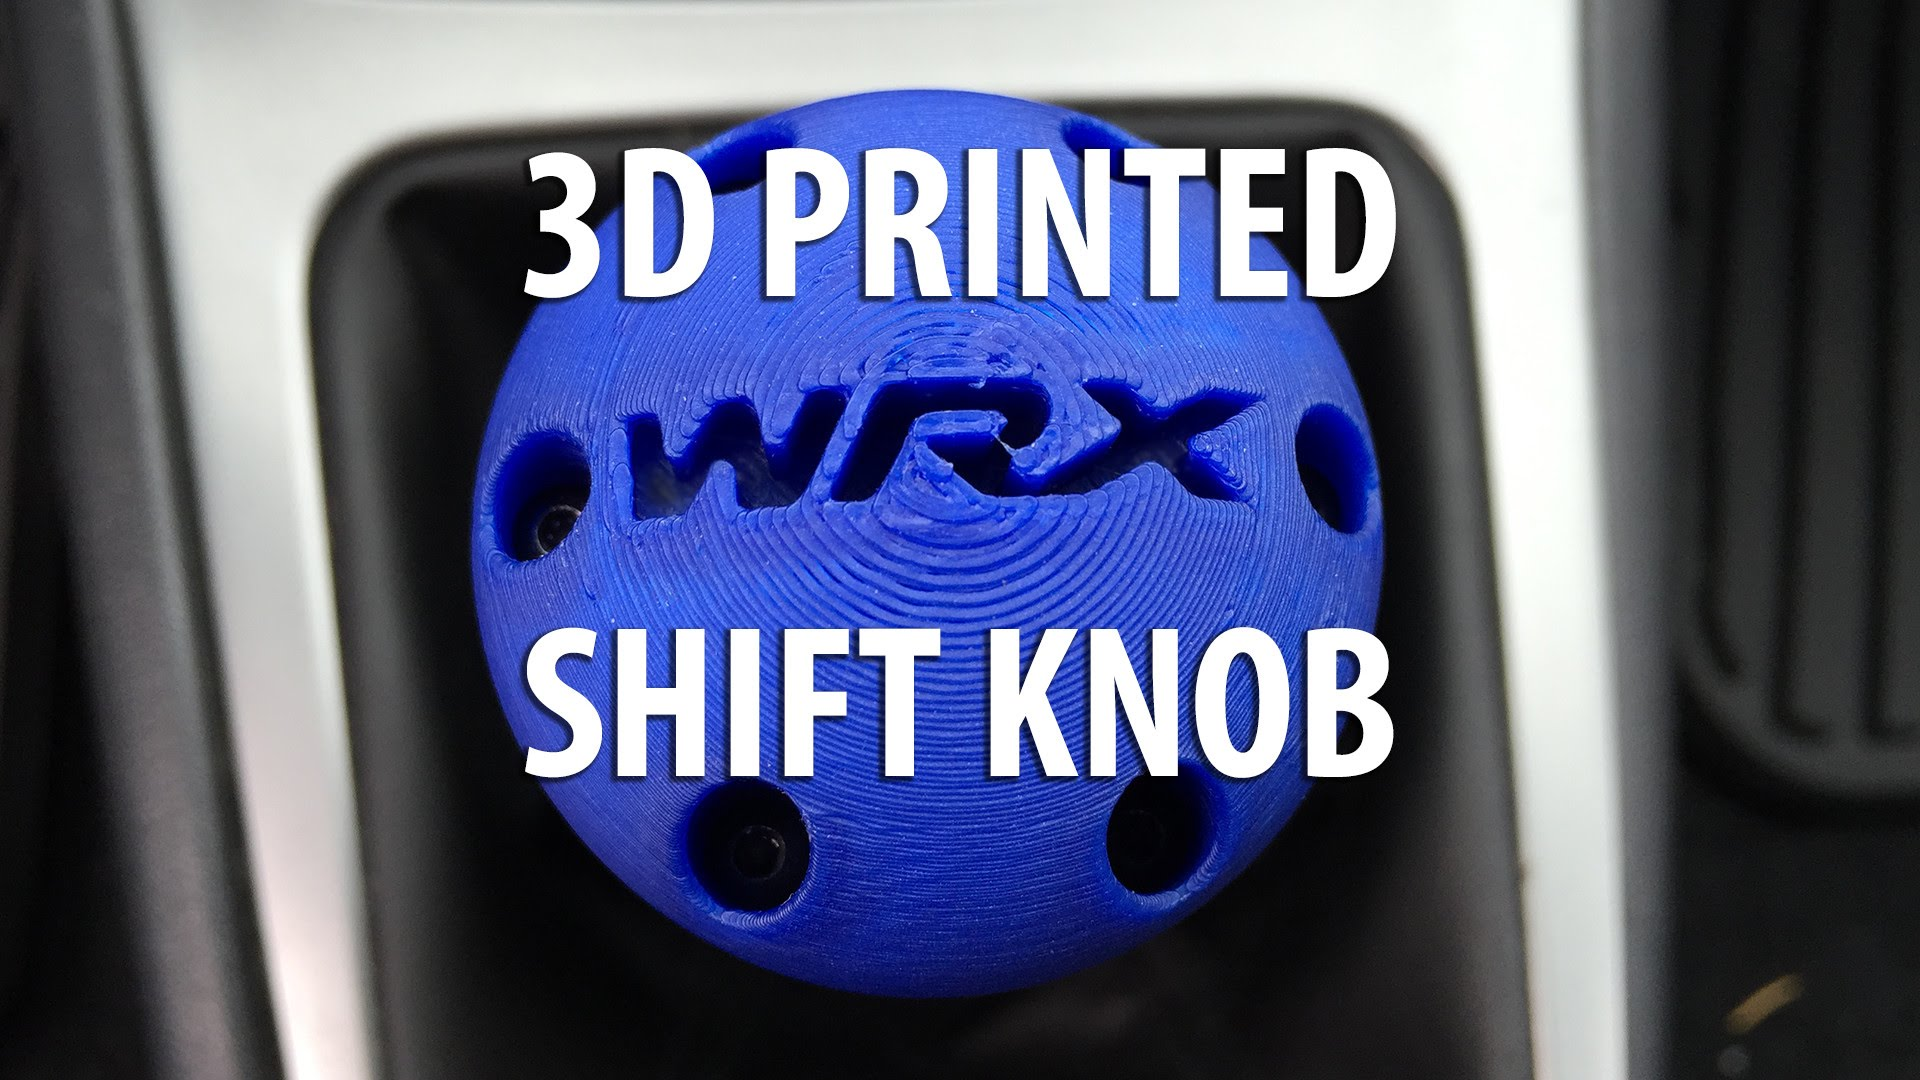 Custom 3D Printed Shift Knob for my Subaru WRX